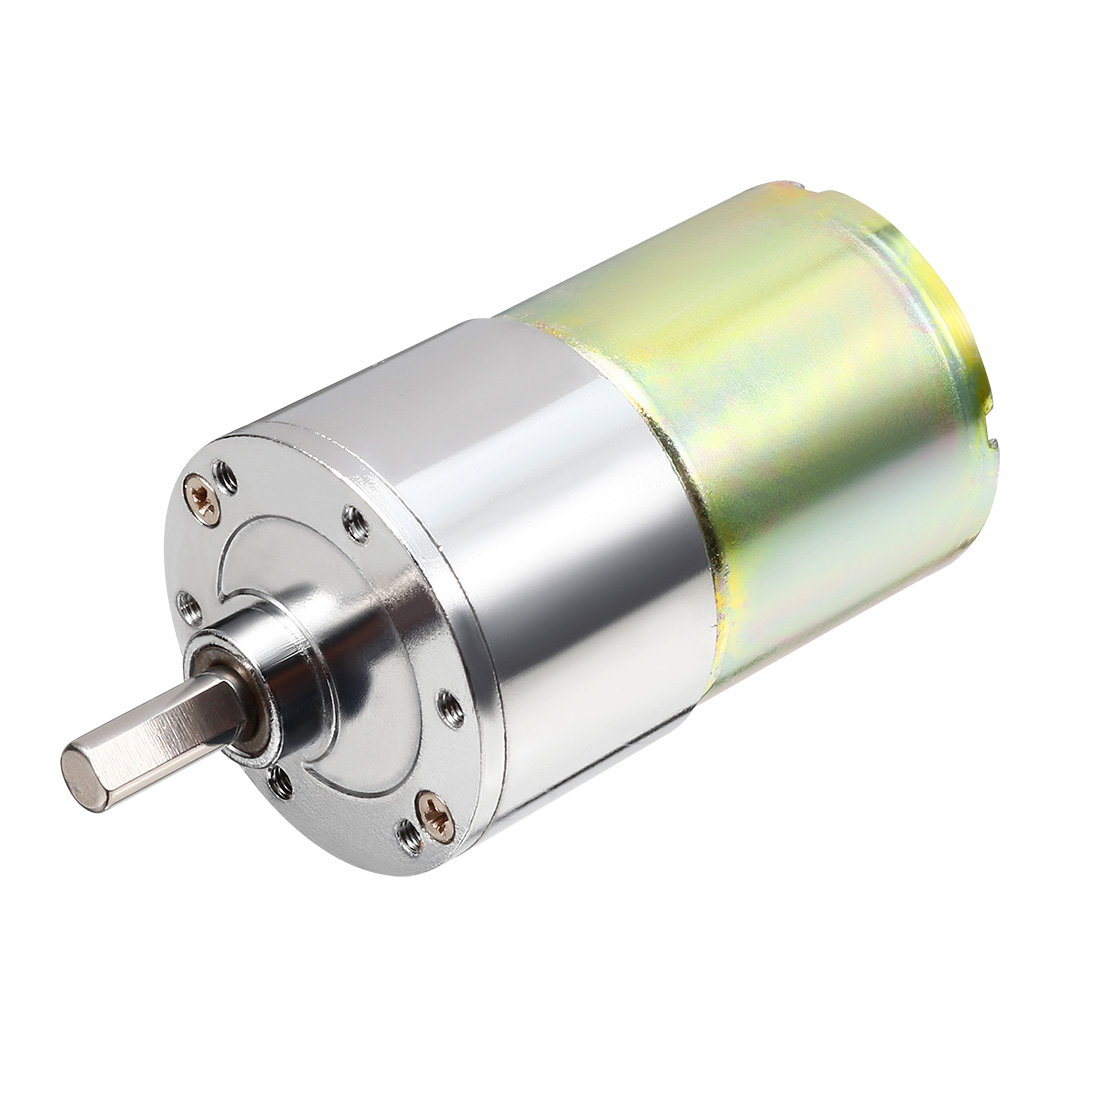 DC 24V 30RPM Micro Gear Box Motor Speed Reduction Electric Gearbox Centric Output Shaft